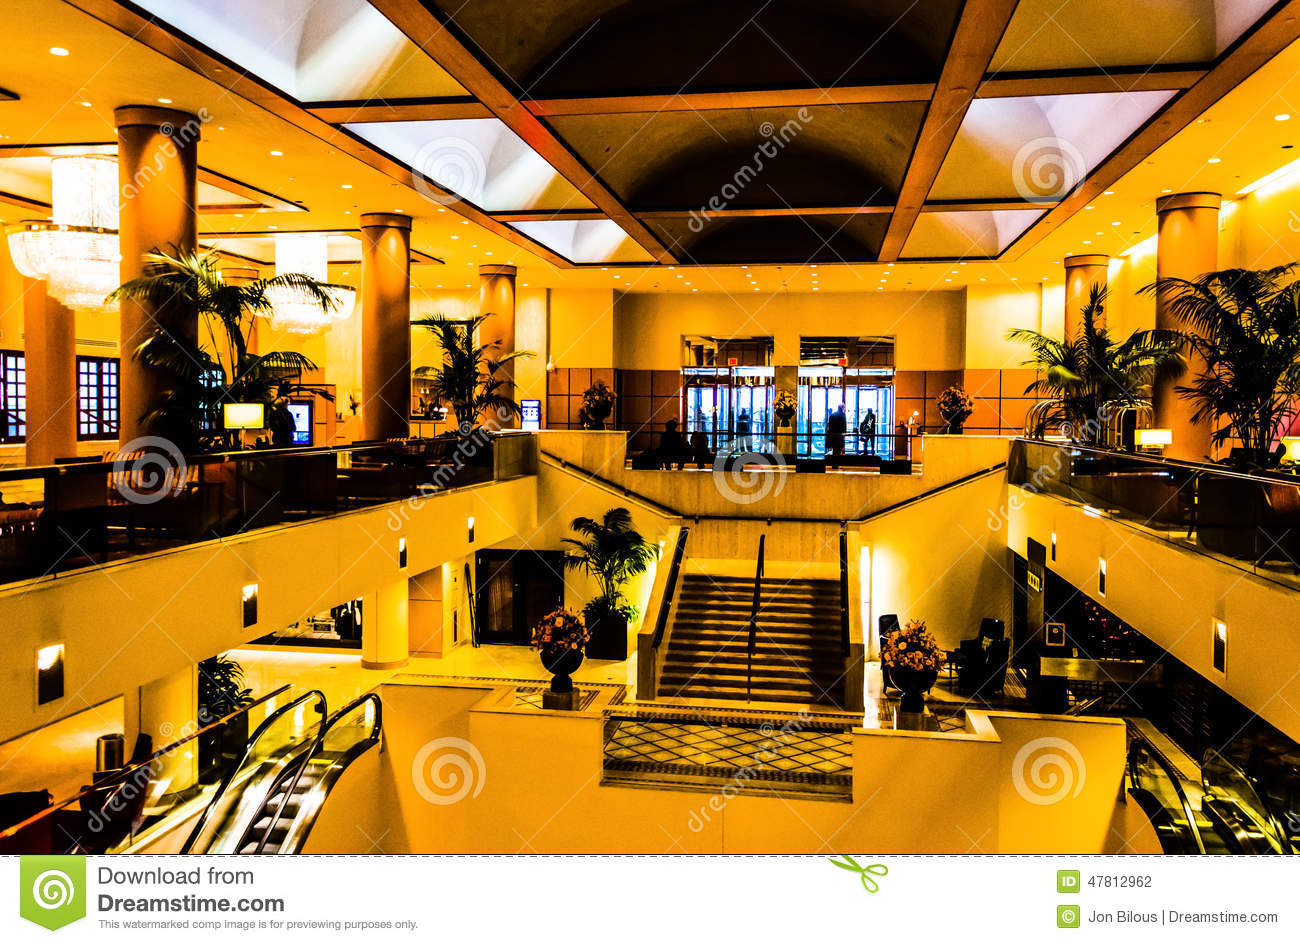 The interior of the jw marriot in washington dc for Interior home designers and washington dc